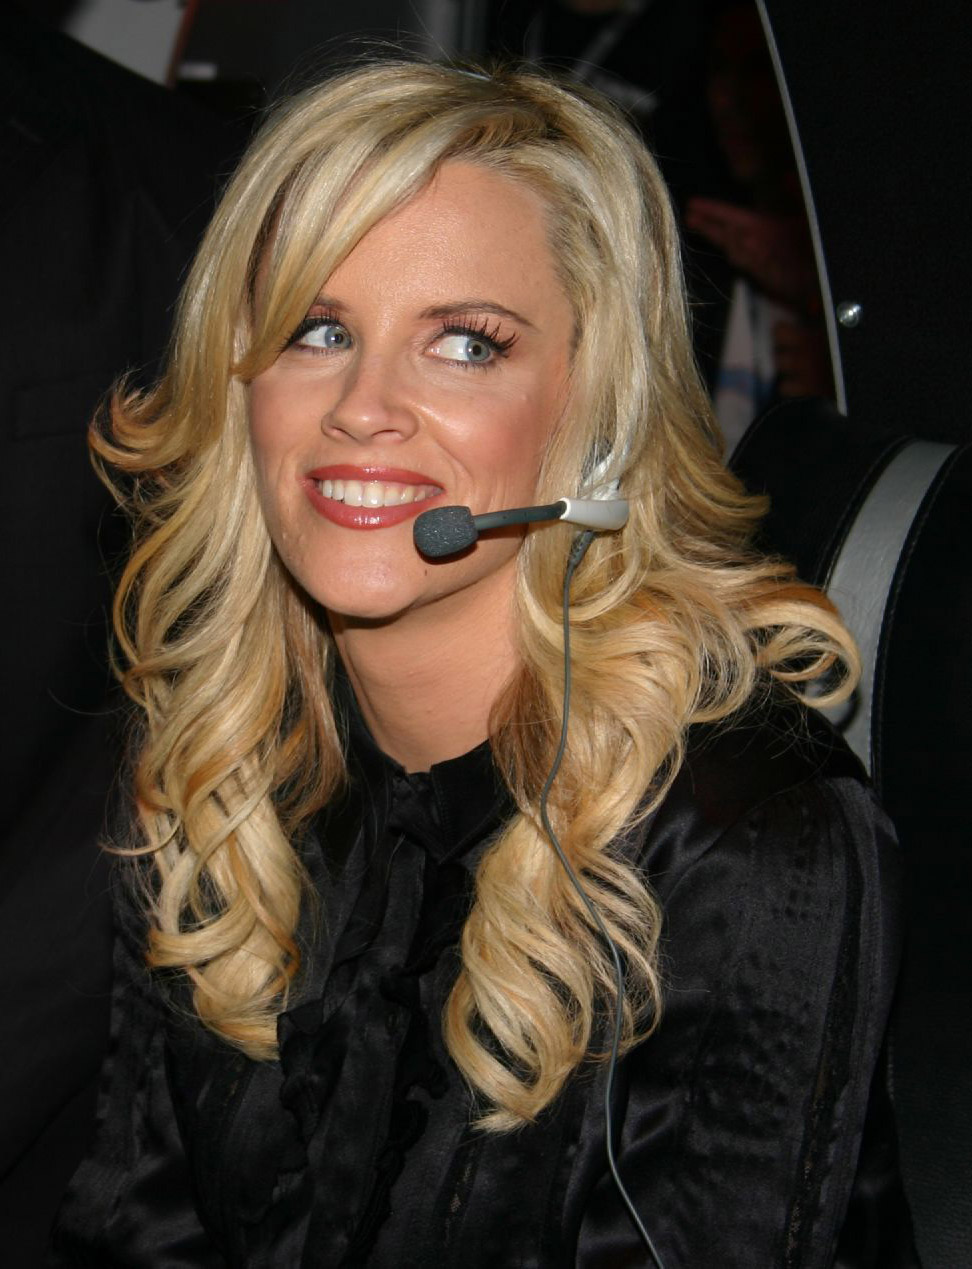 Jenny McCarthy - Wikipedia, the free encyclopedia